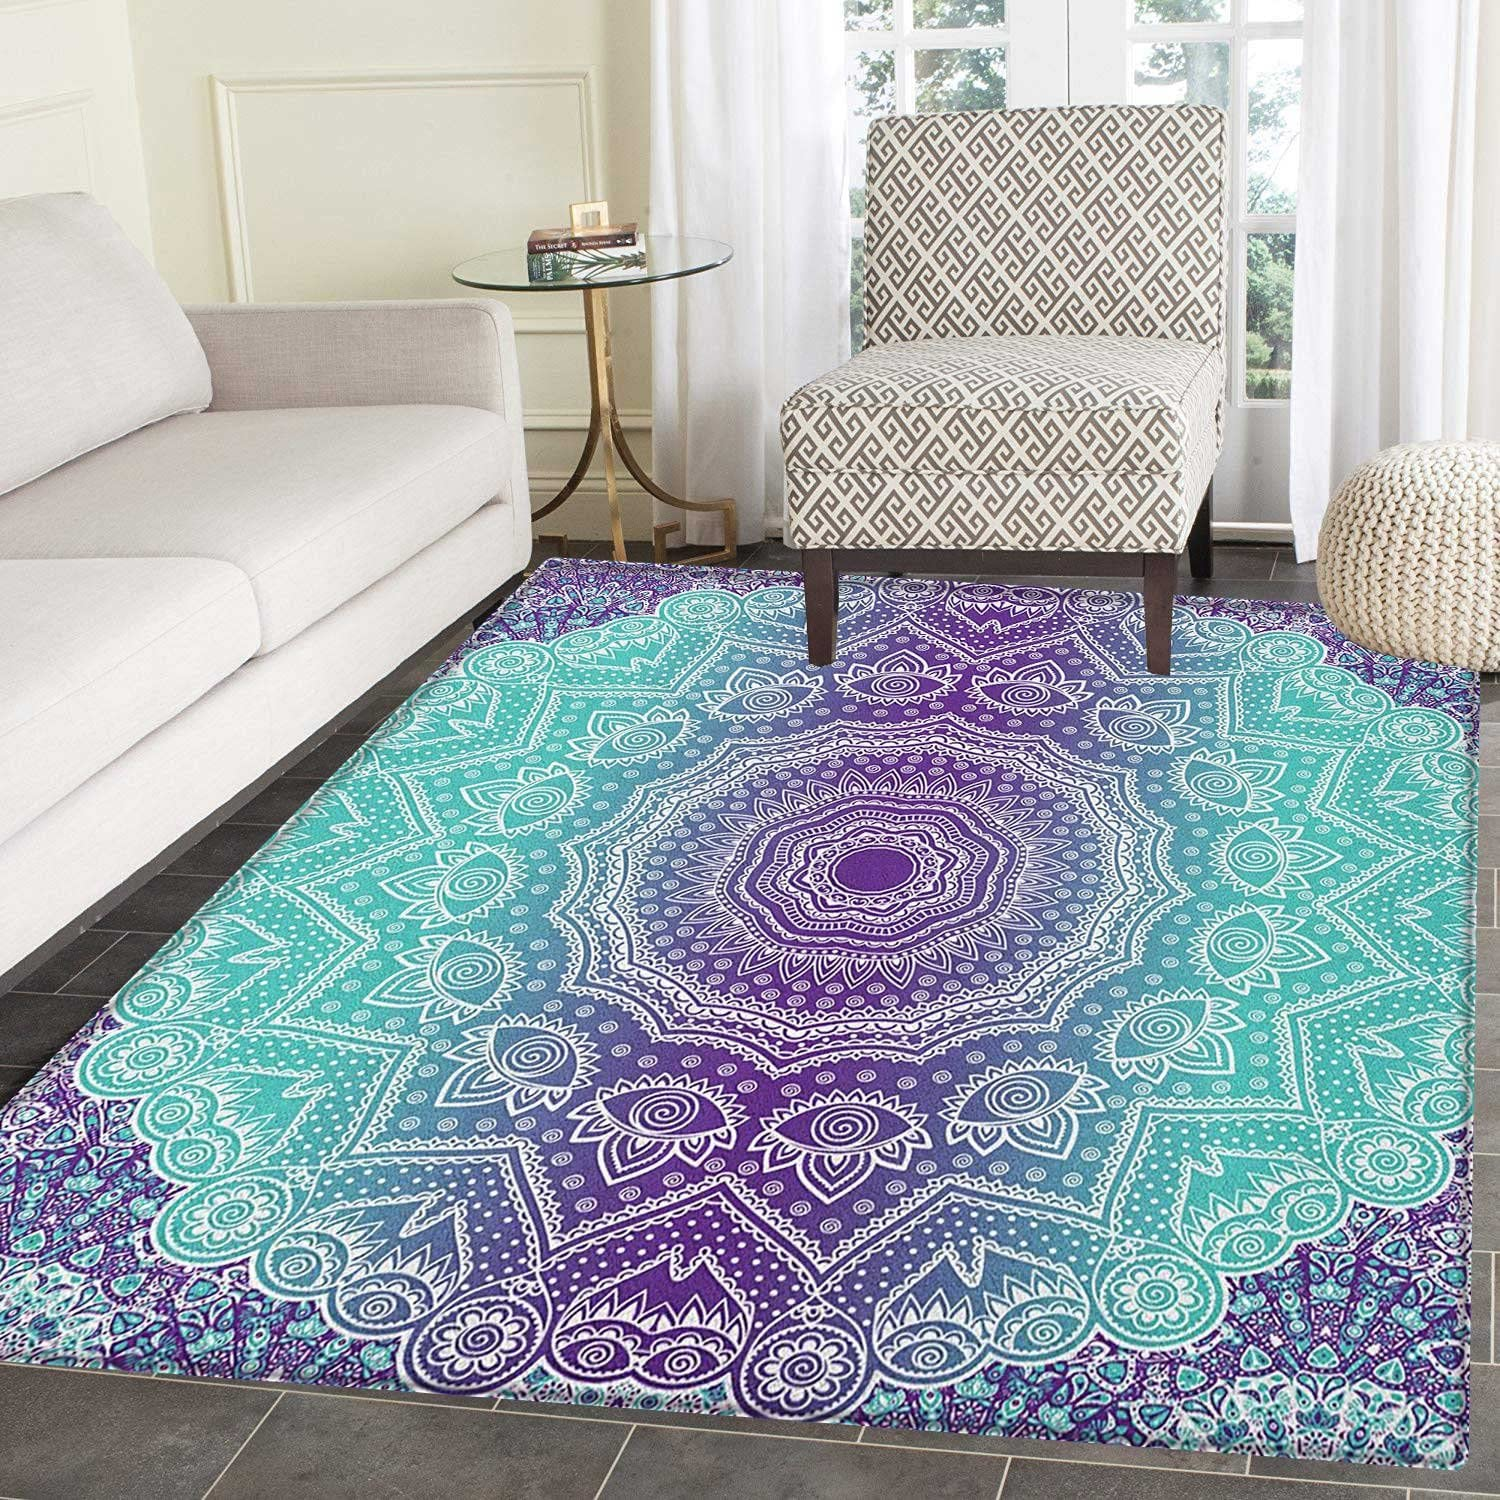 Purple and Turquoise Area Rug Carpet Hippie Ombre Mandala Inner Peace and Meditation with Ornamental Art Living Dining Room Bedroom Hallway Office Carpet 3'x4' Purple Aqua